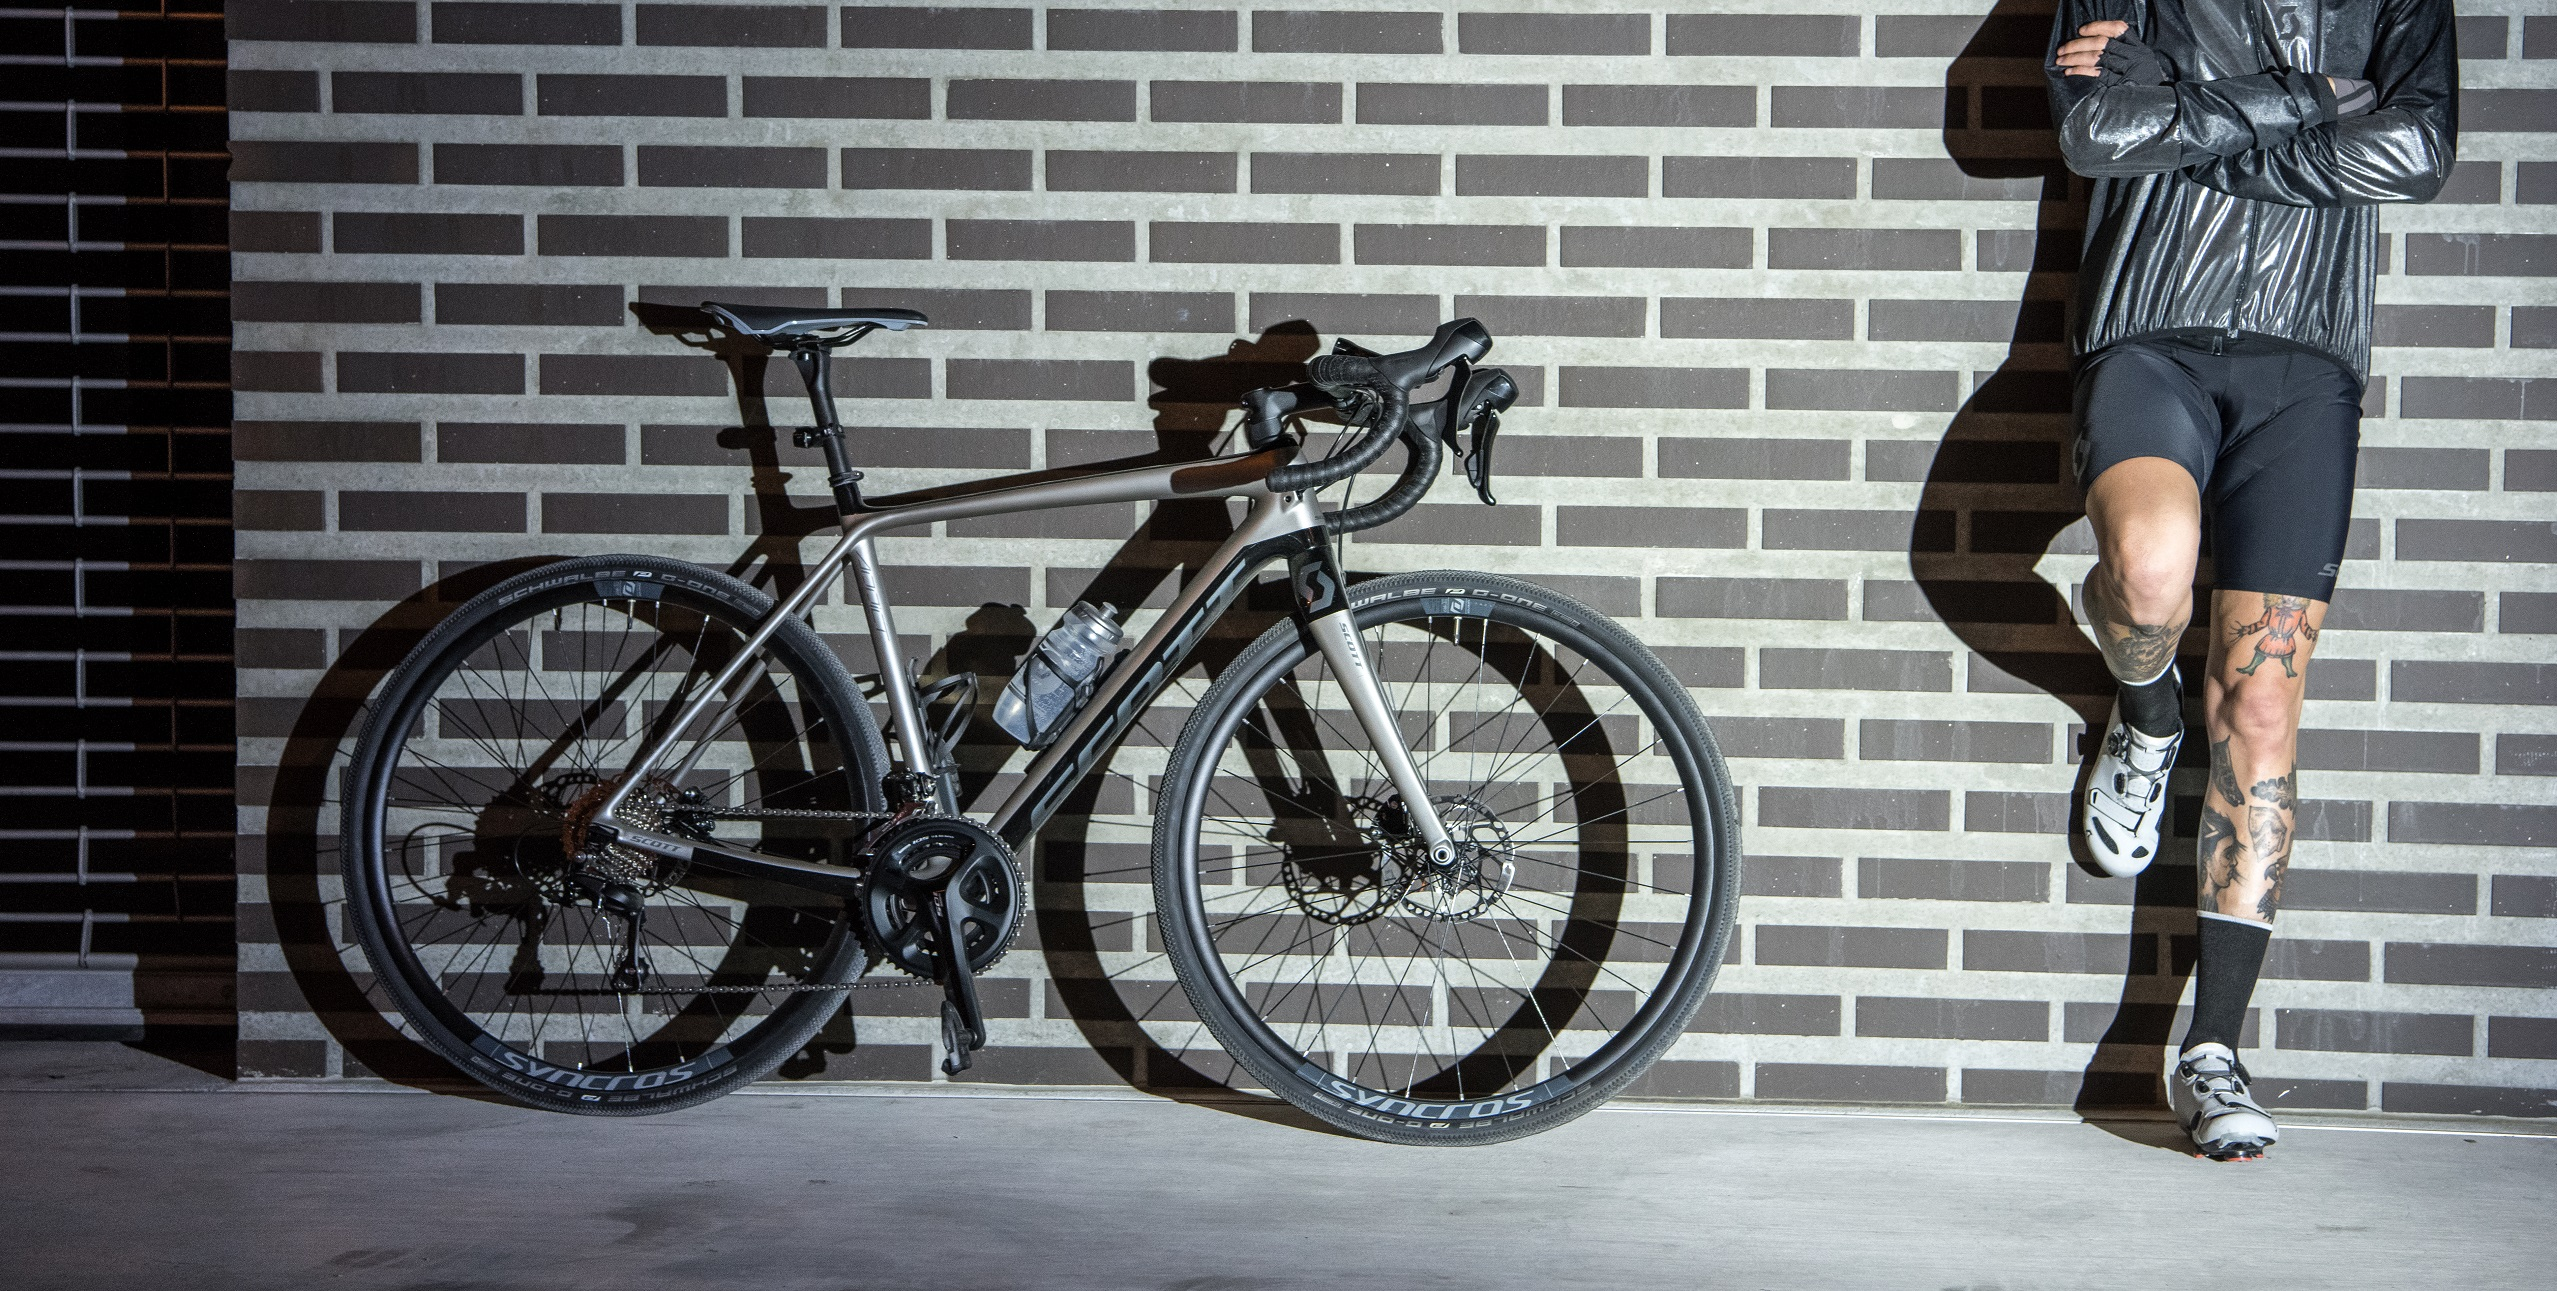 damen indoor cycling schuhe schuhe bodenfrost bikes and fashion. Black Bedroom Furniture Sets. Home Design Ideas